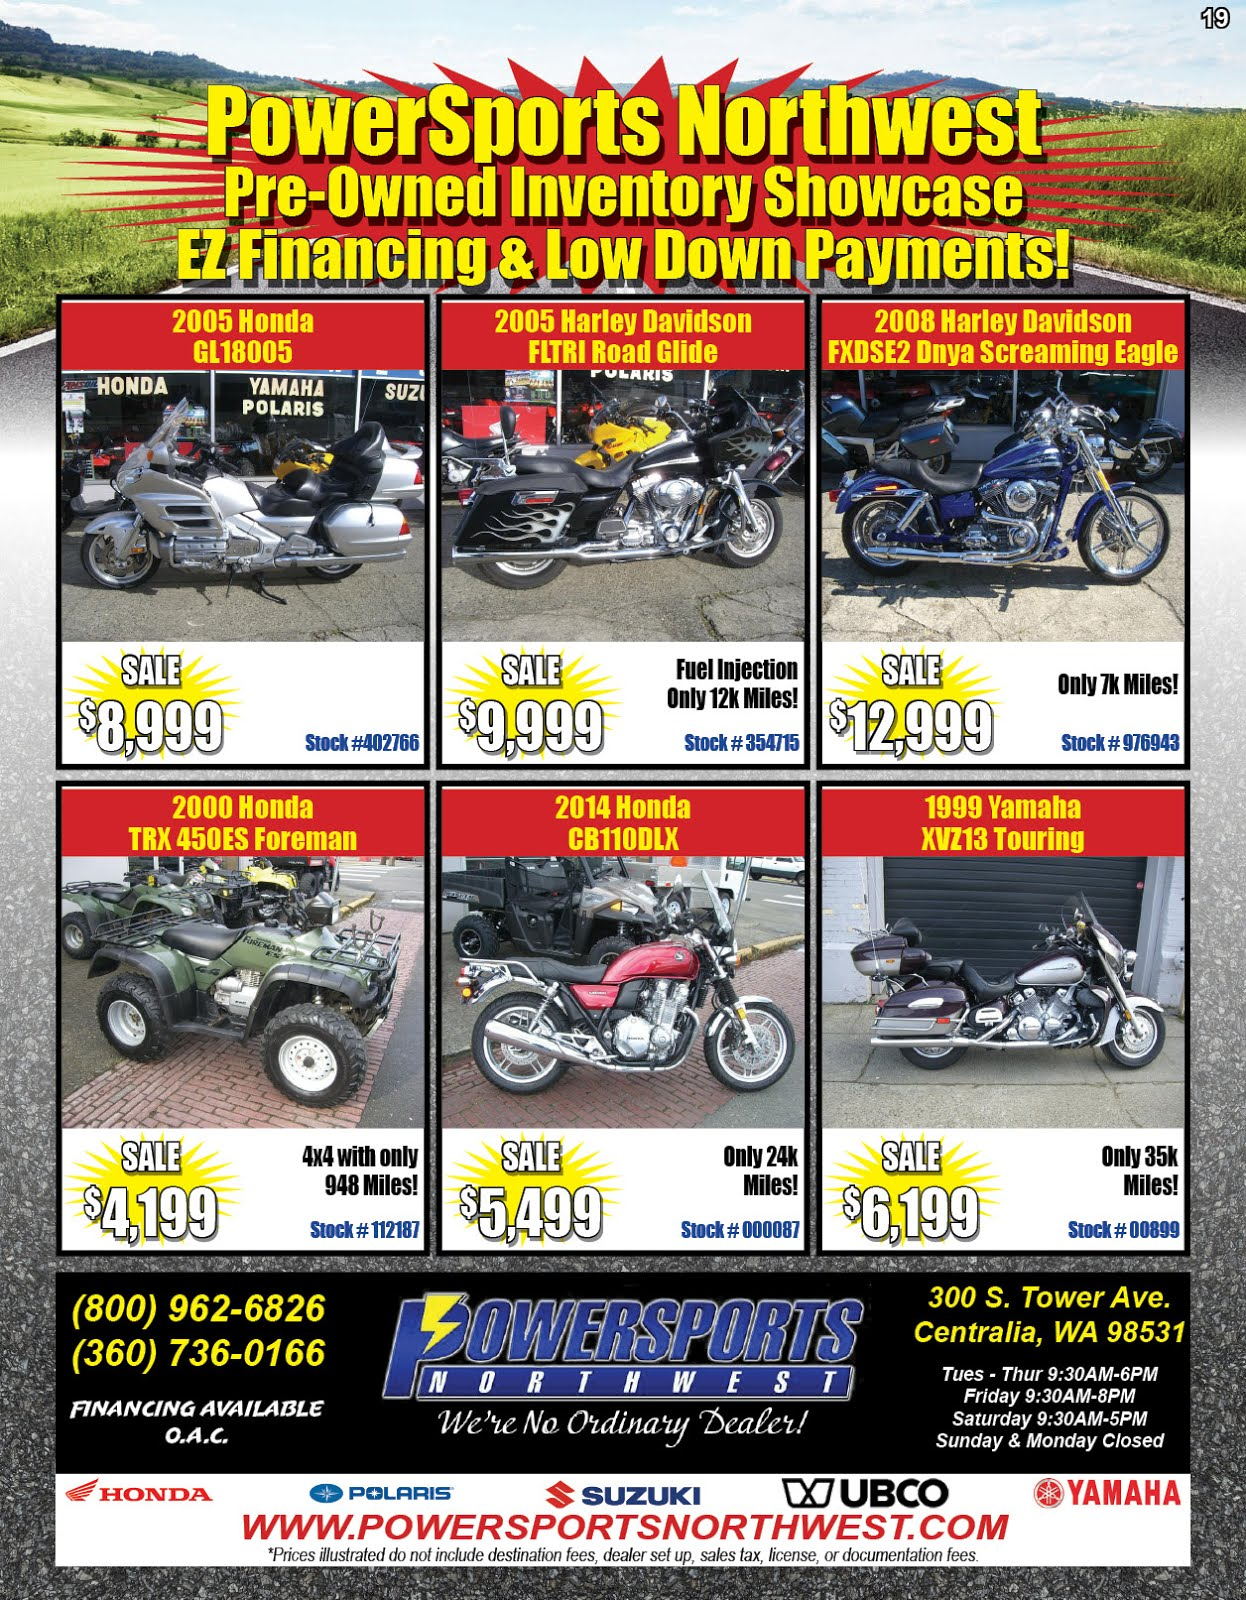 Powersports Northwest Used Motorcycle Sale!